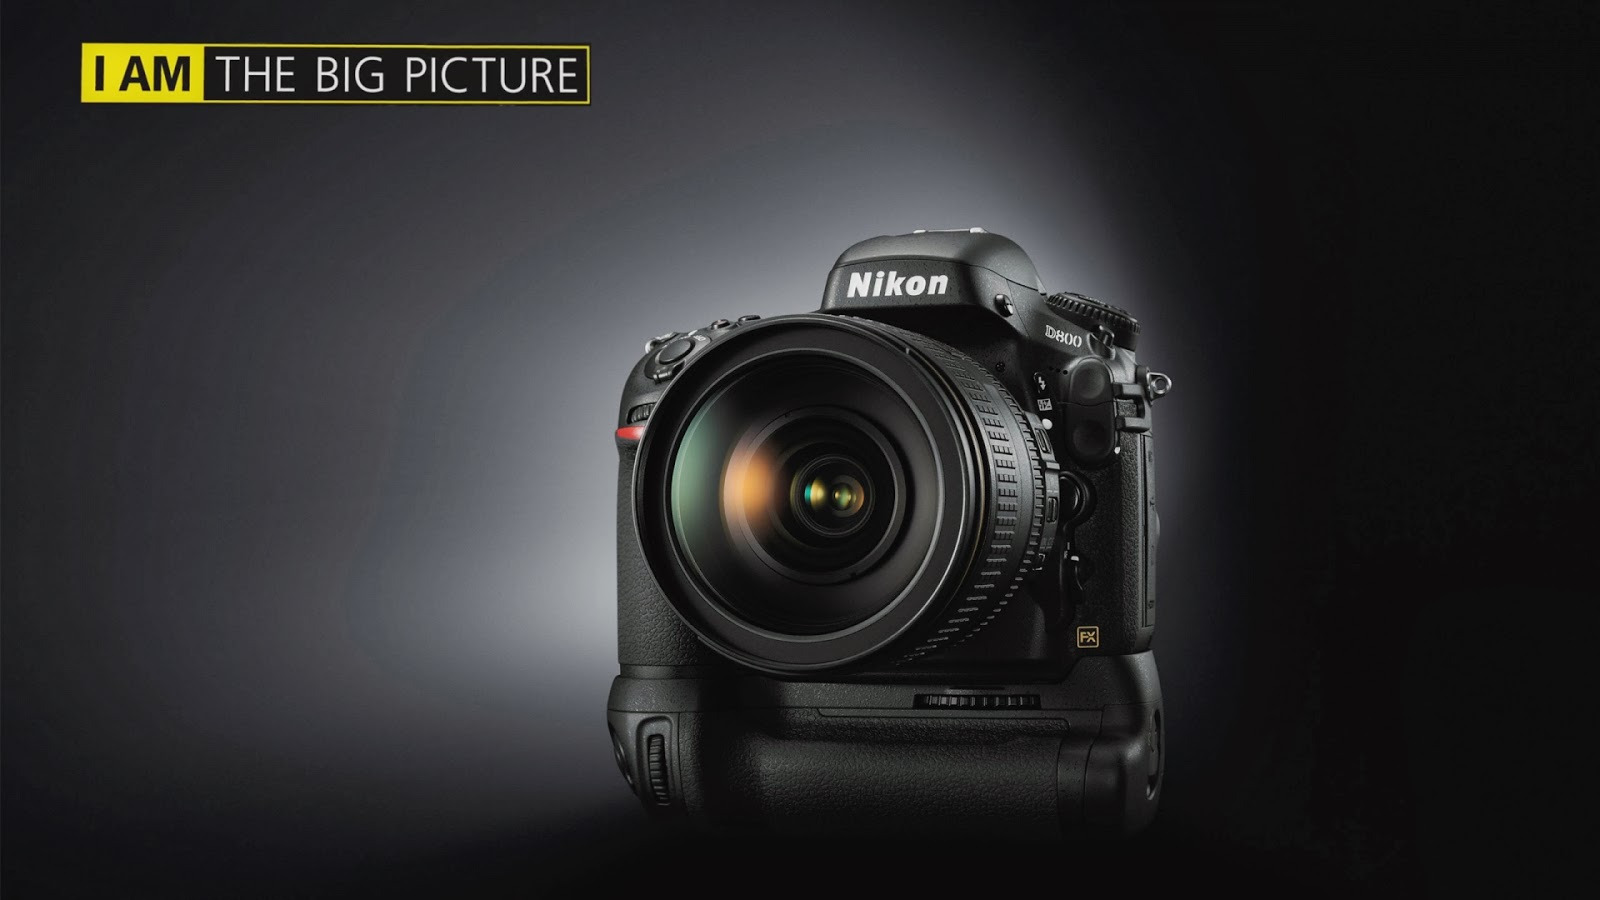 Nikon HD Wallpapers | HD Wallpapers 360, New Widescreen Desktop